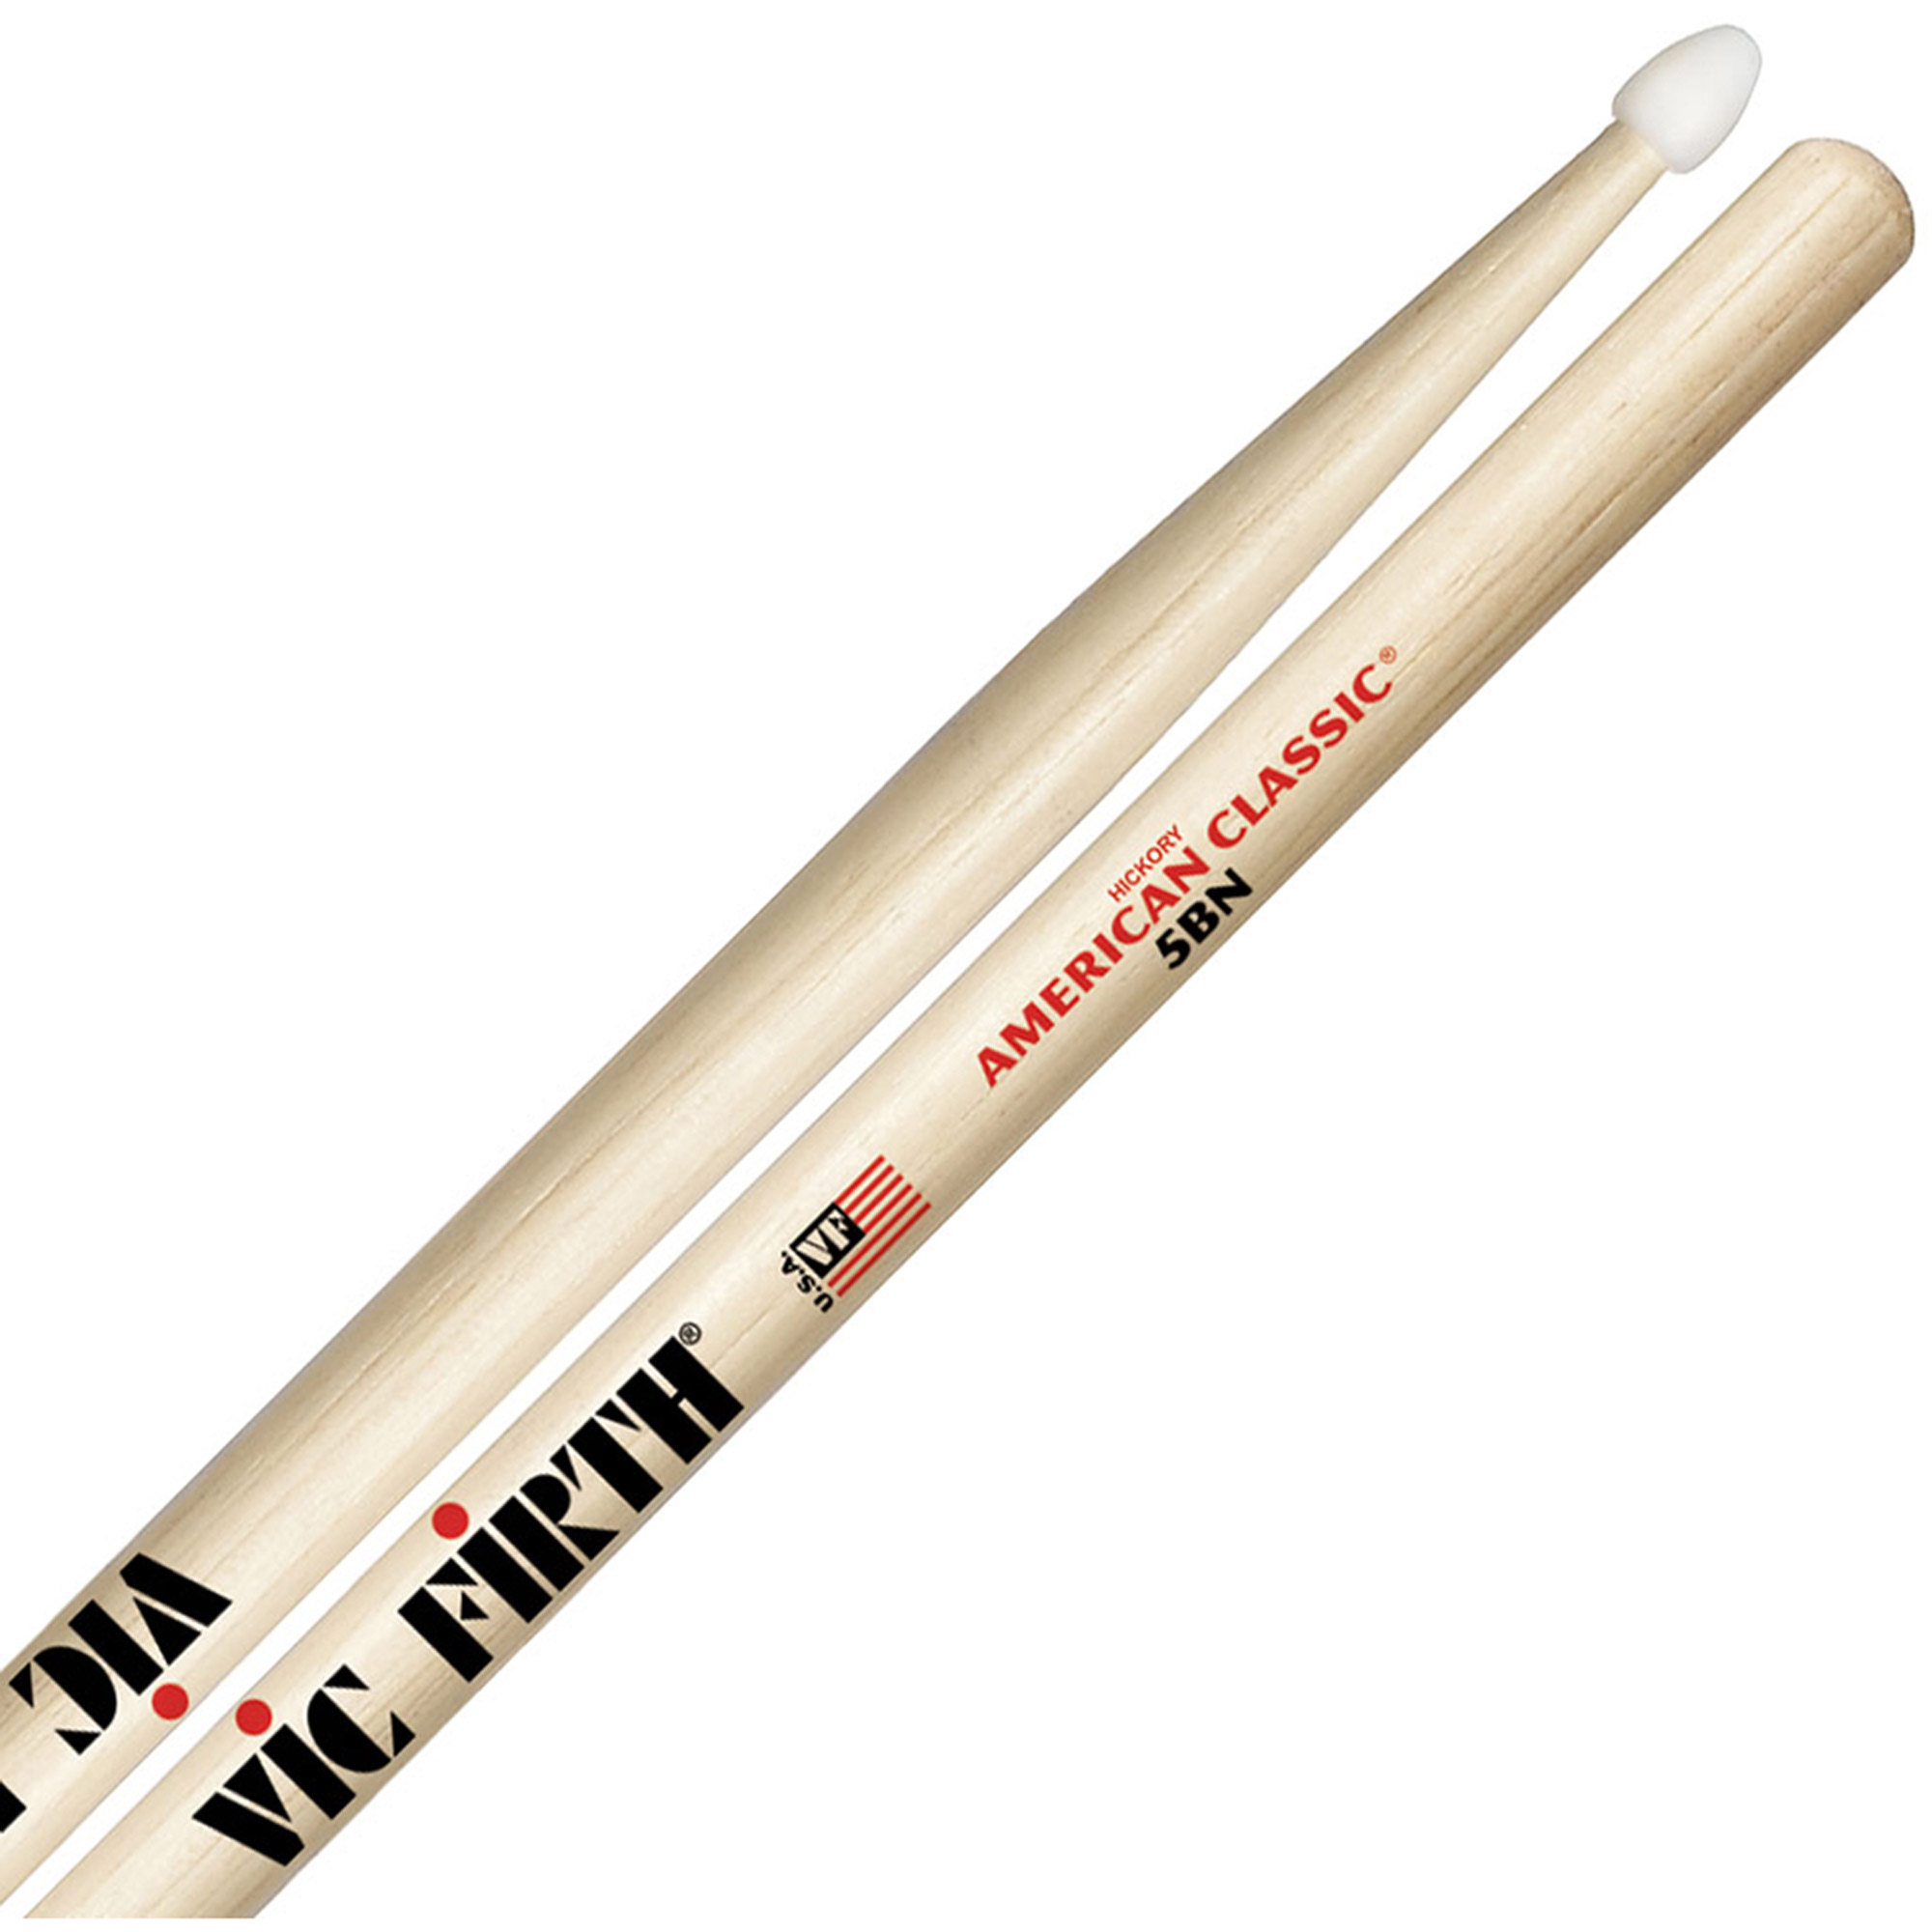 Vic Firth American Classic 5BN Nylon Tip Hickory Drumsticks